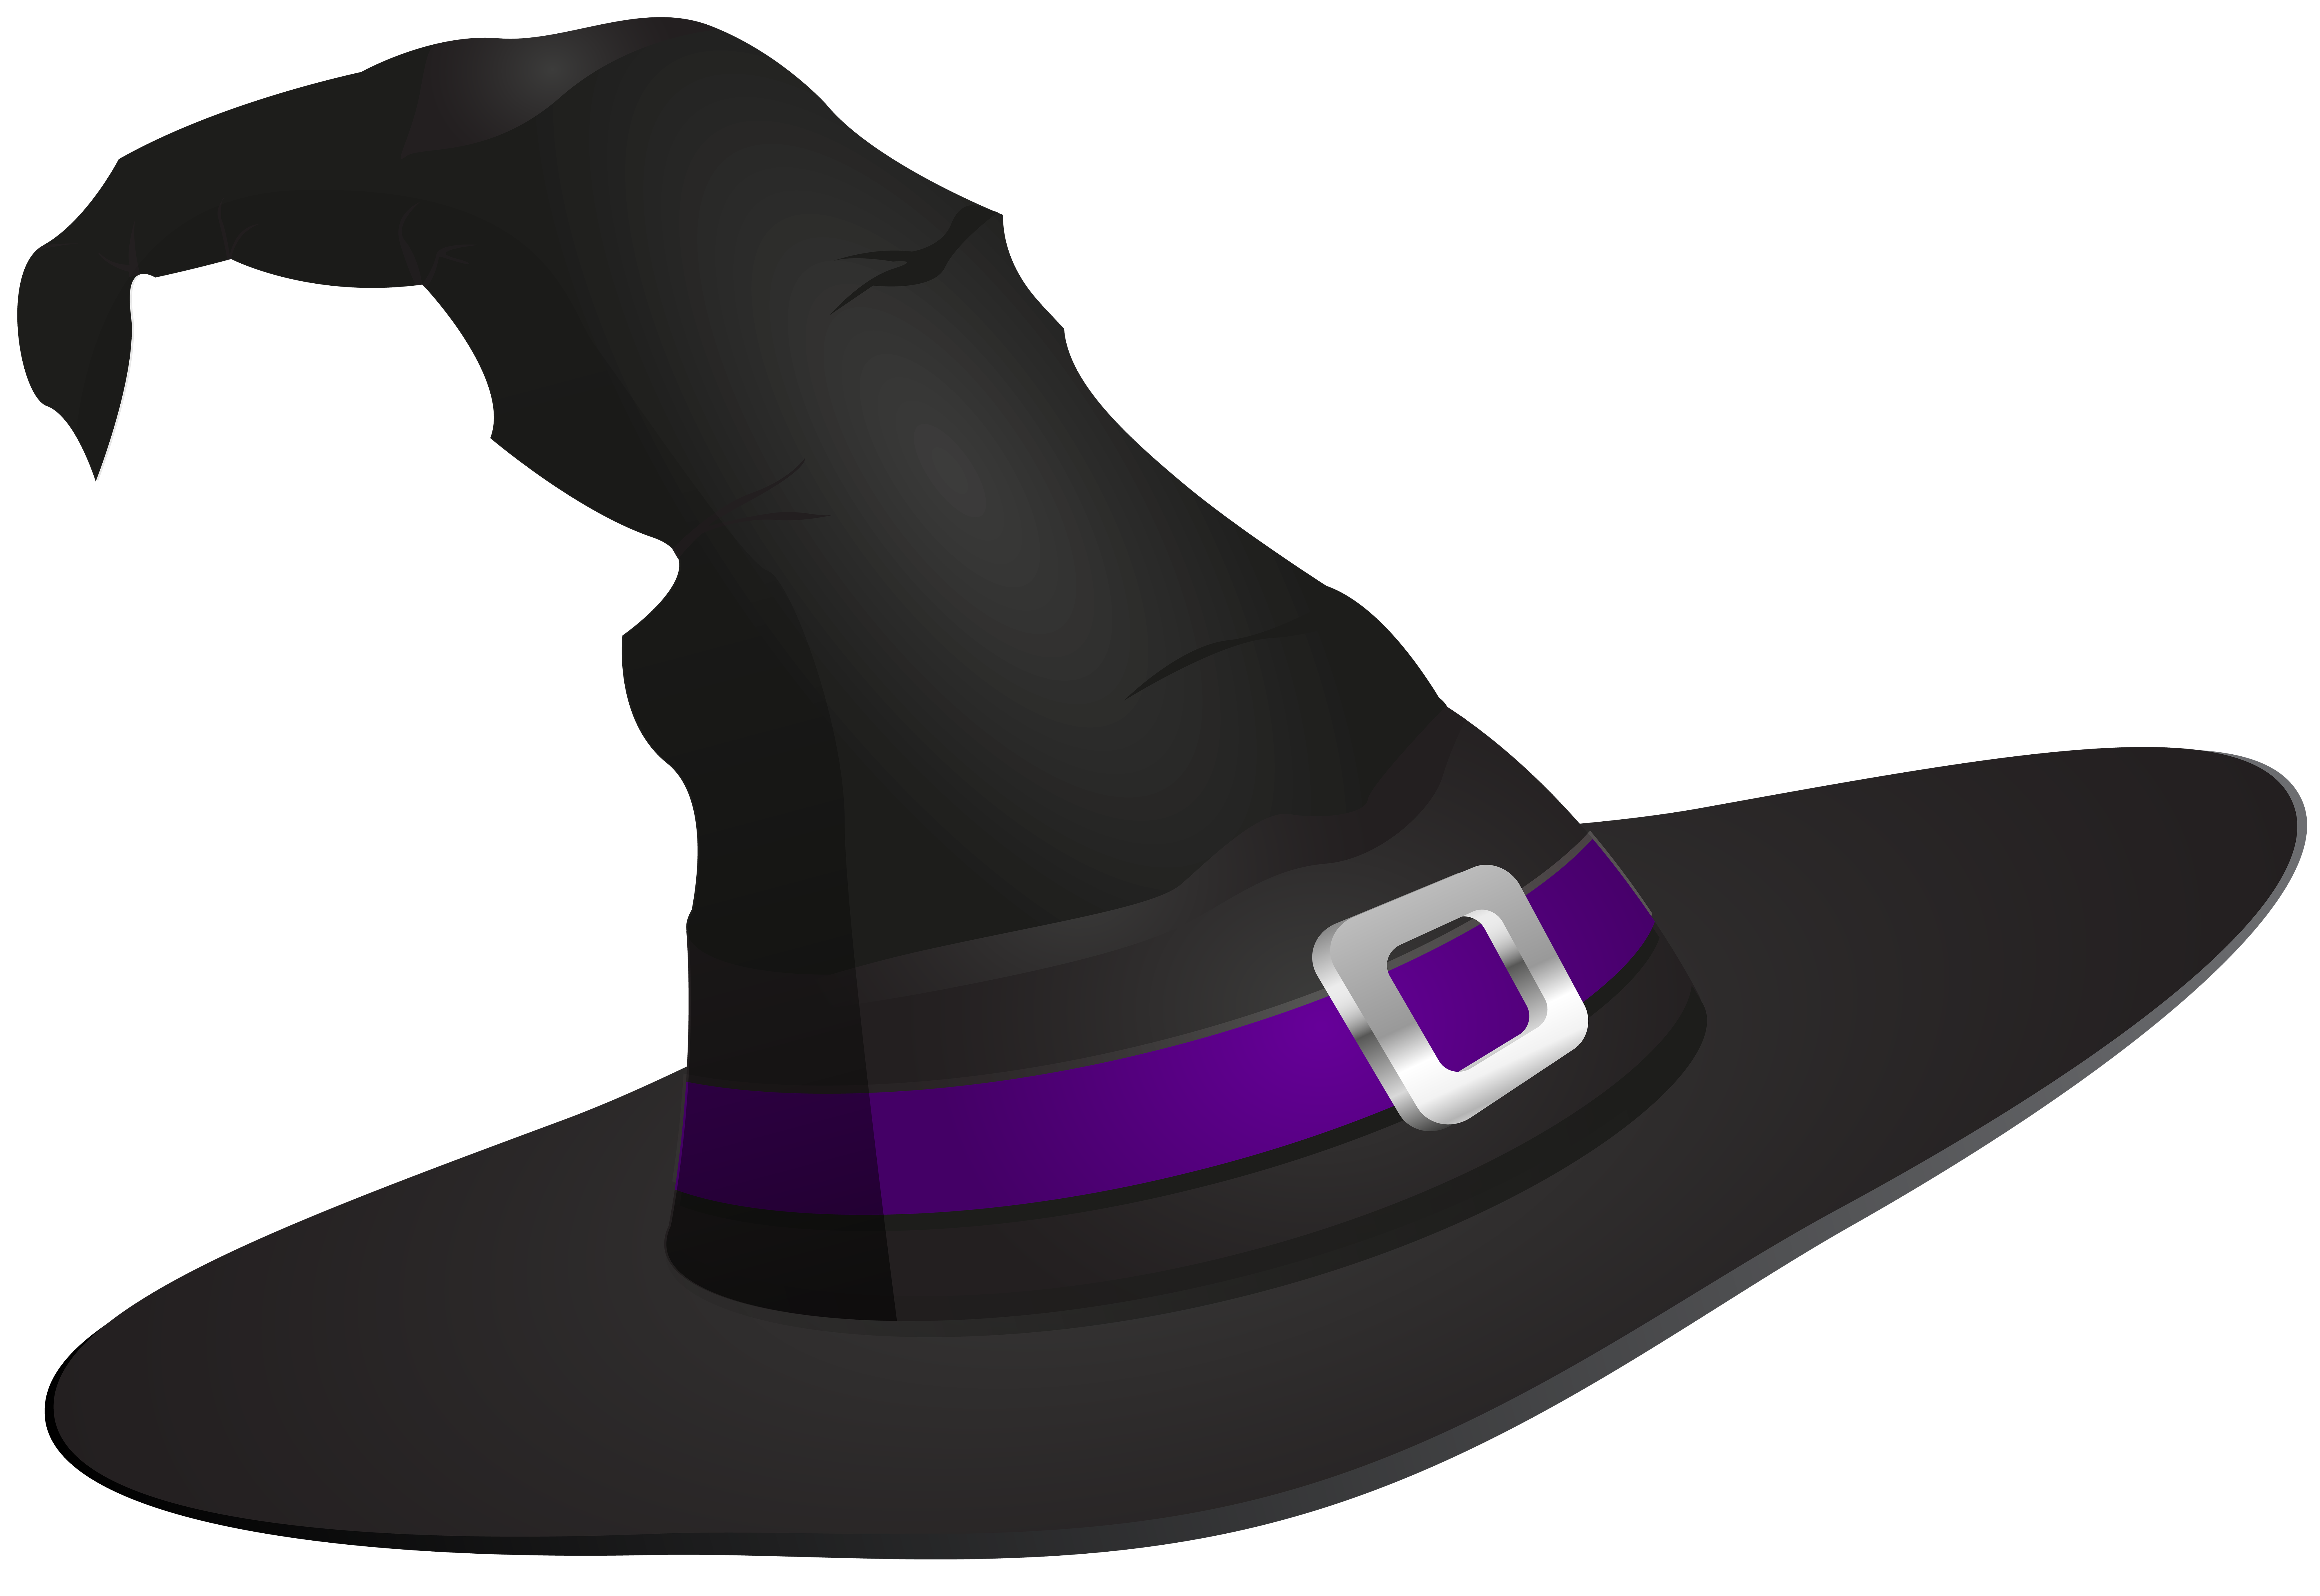 8000x5503 Witch Hat Png Transparent Clip Art Imageu200b Gallery Yopriceville